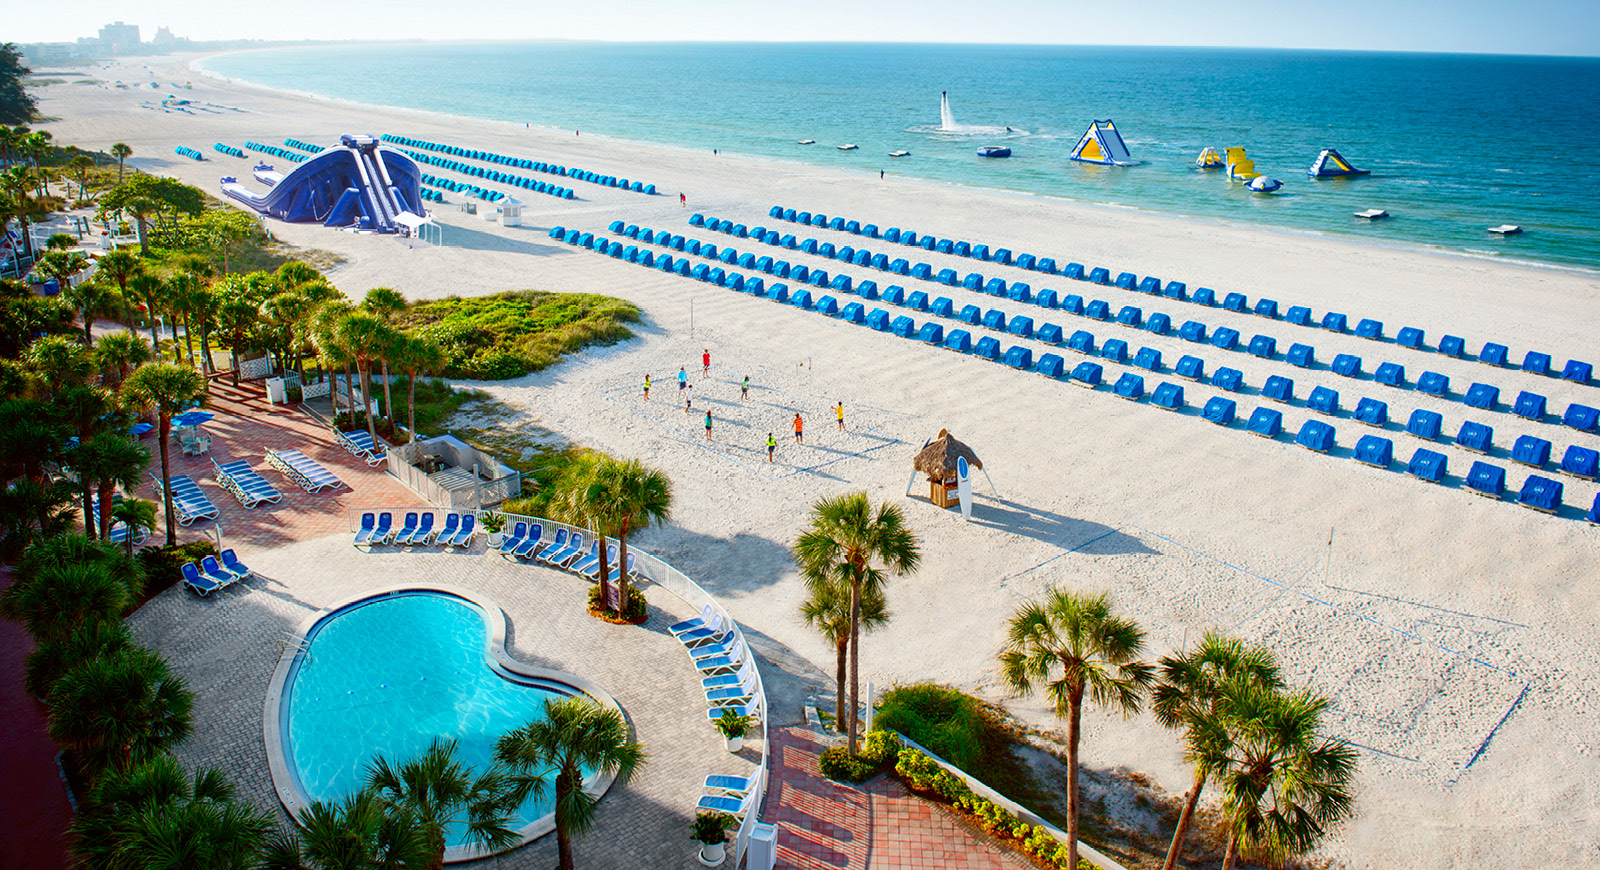 image of the cabanas on the sand at Clearwater Beach Florida